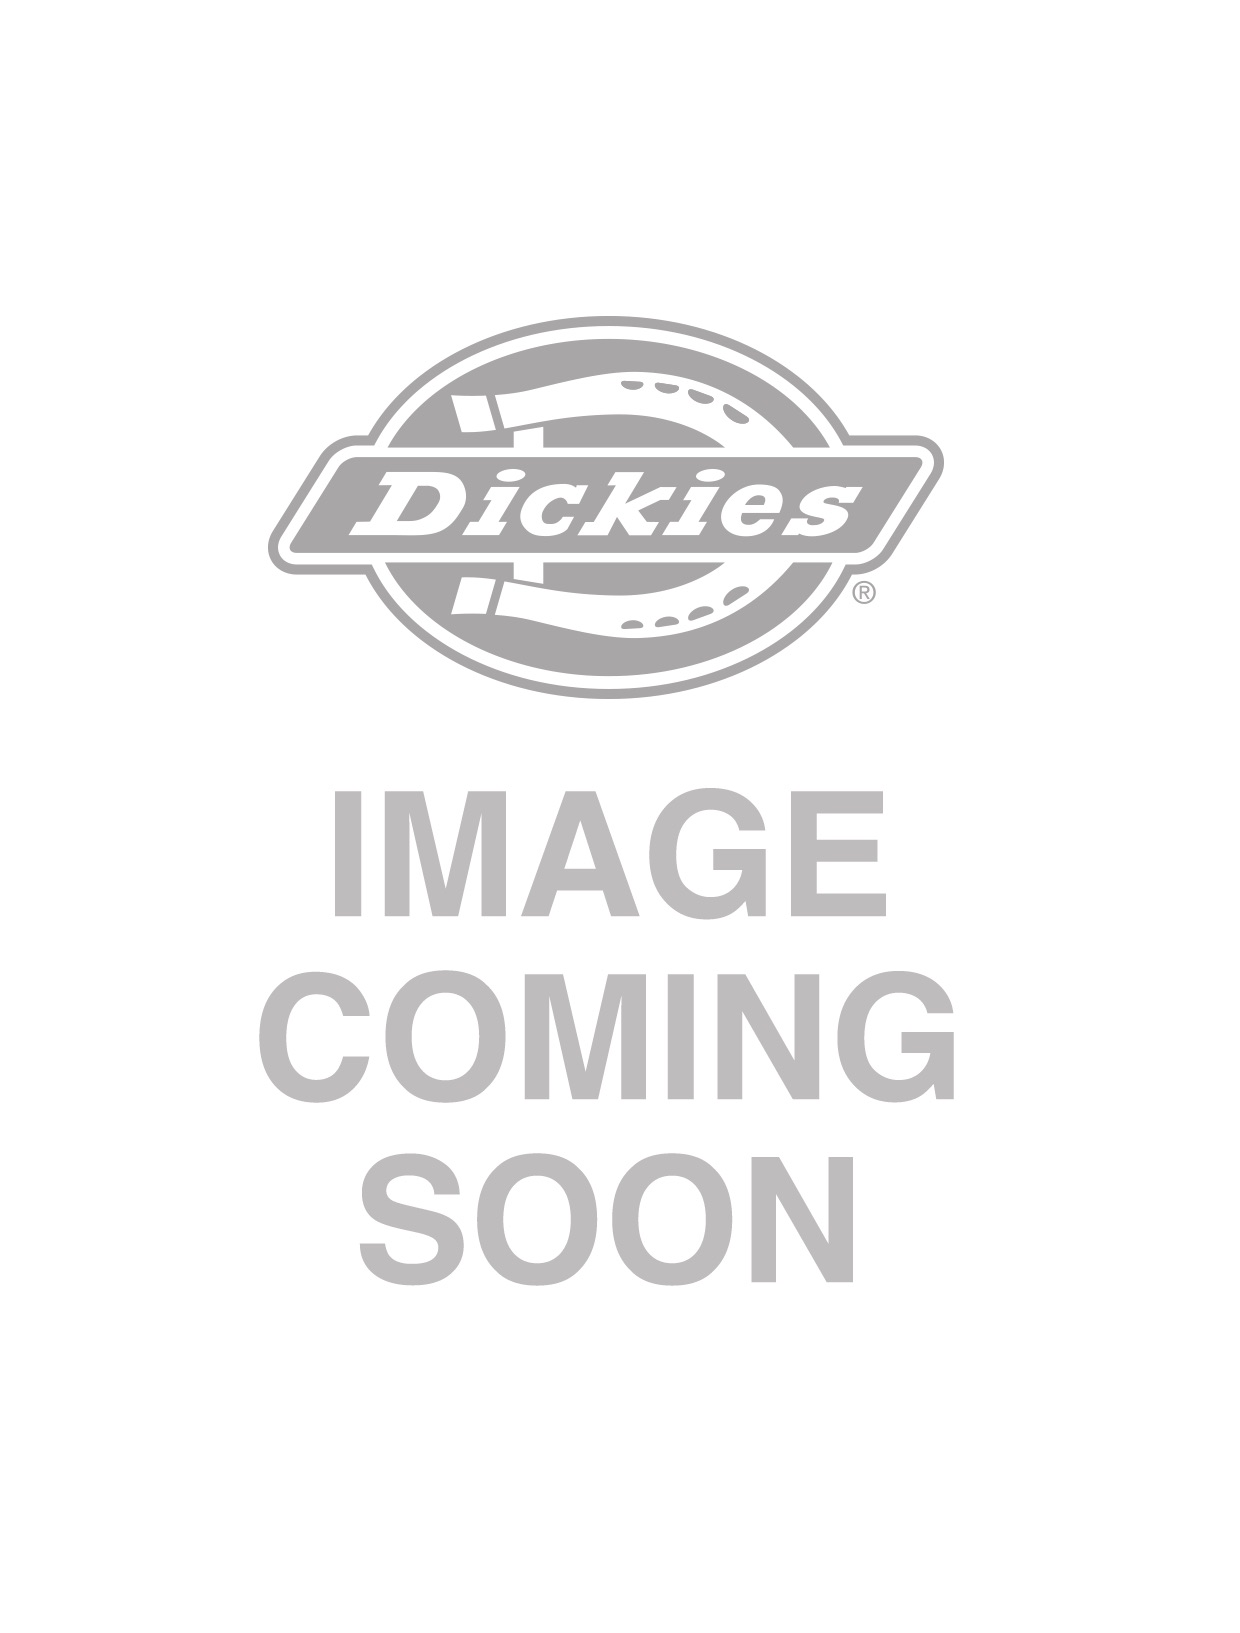 Dickies Naruna Jacket